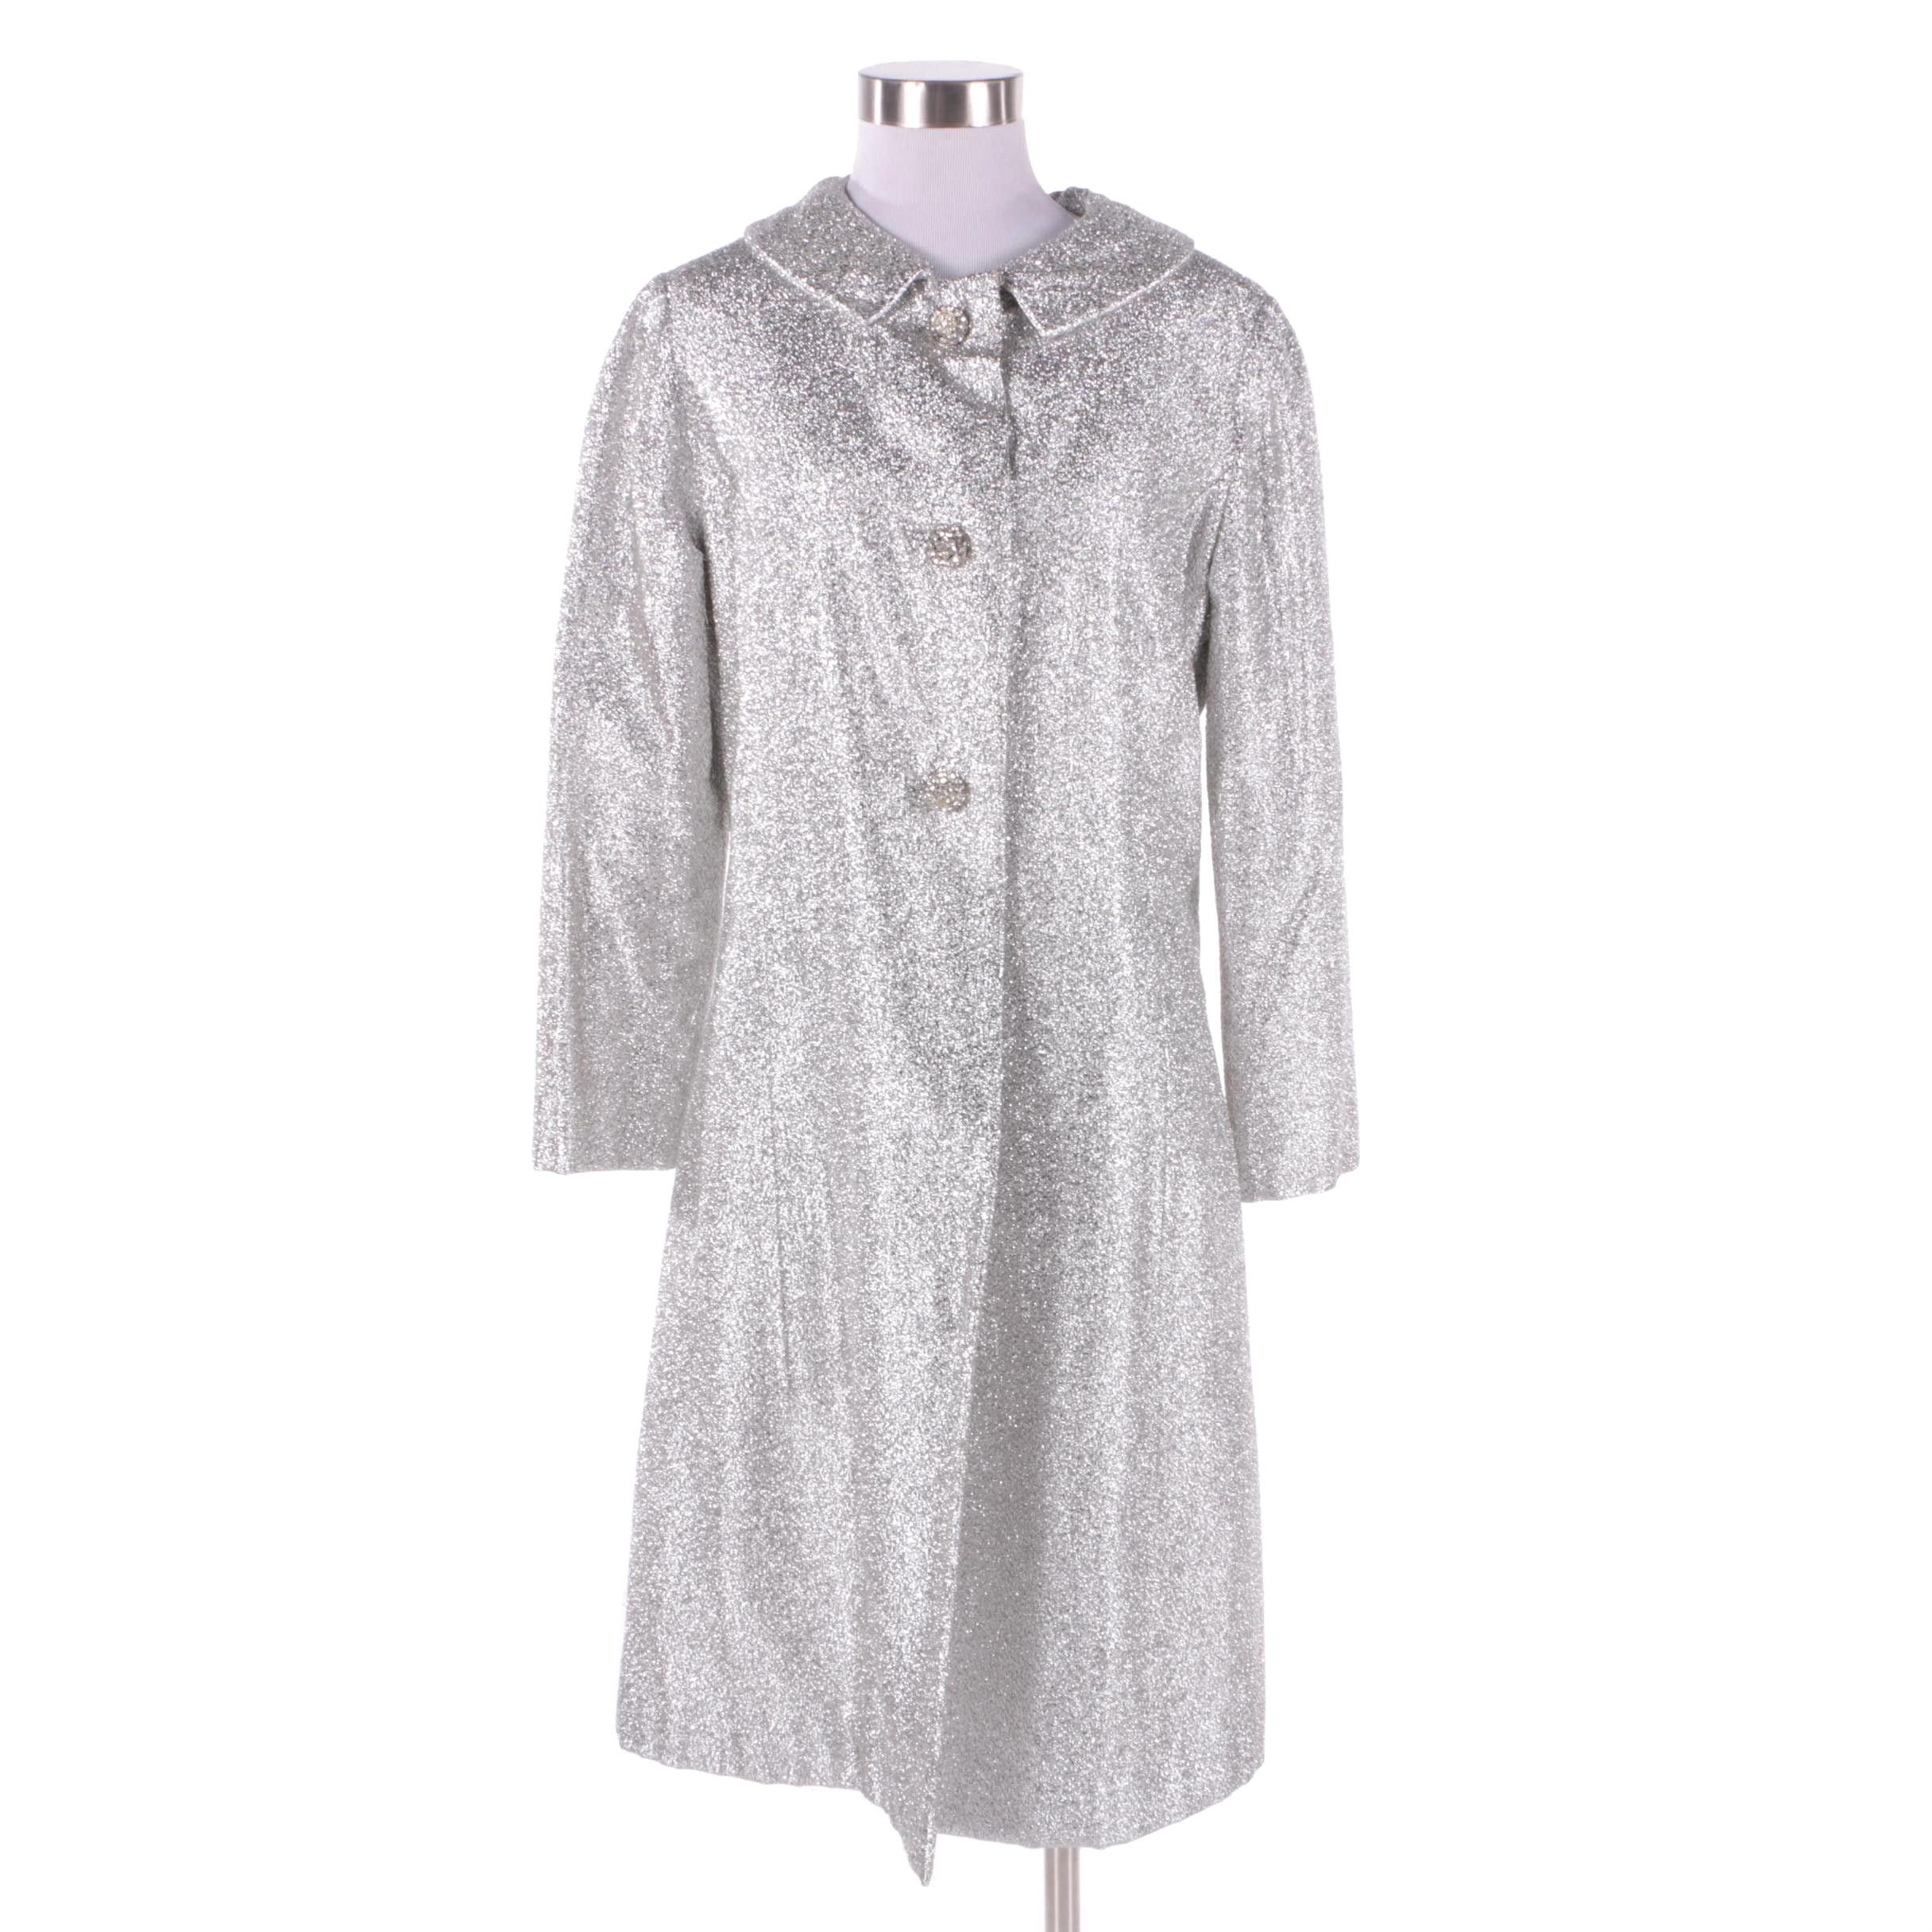 Women's 1960s Vintage Silver Metallic Coat